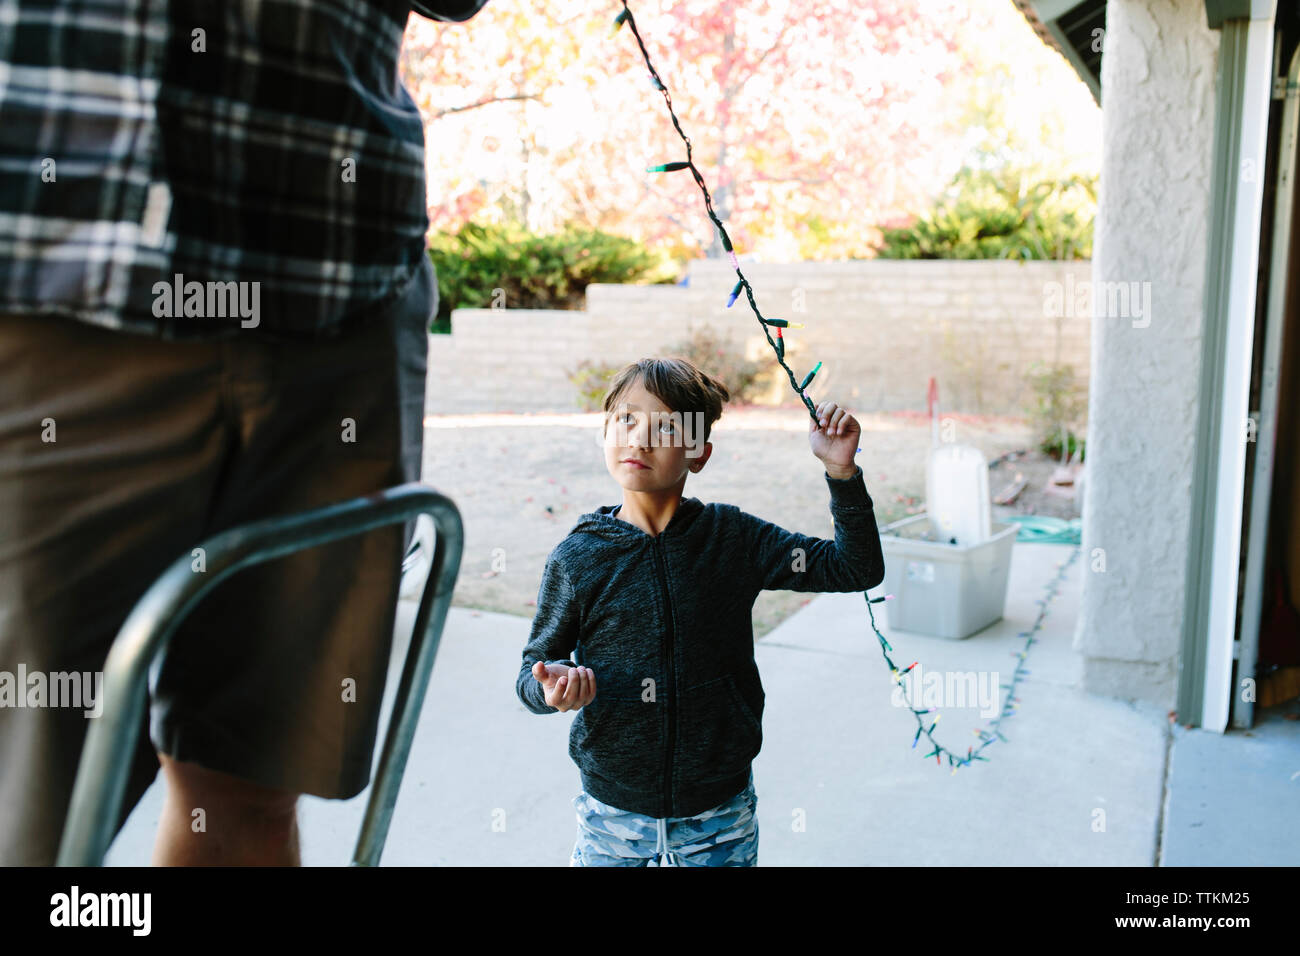 Son looking at father hanging colorful string lights on house during Christmas Stock Photo